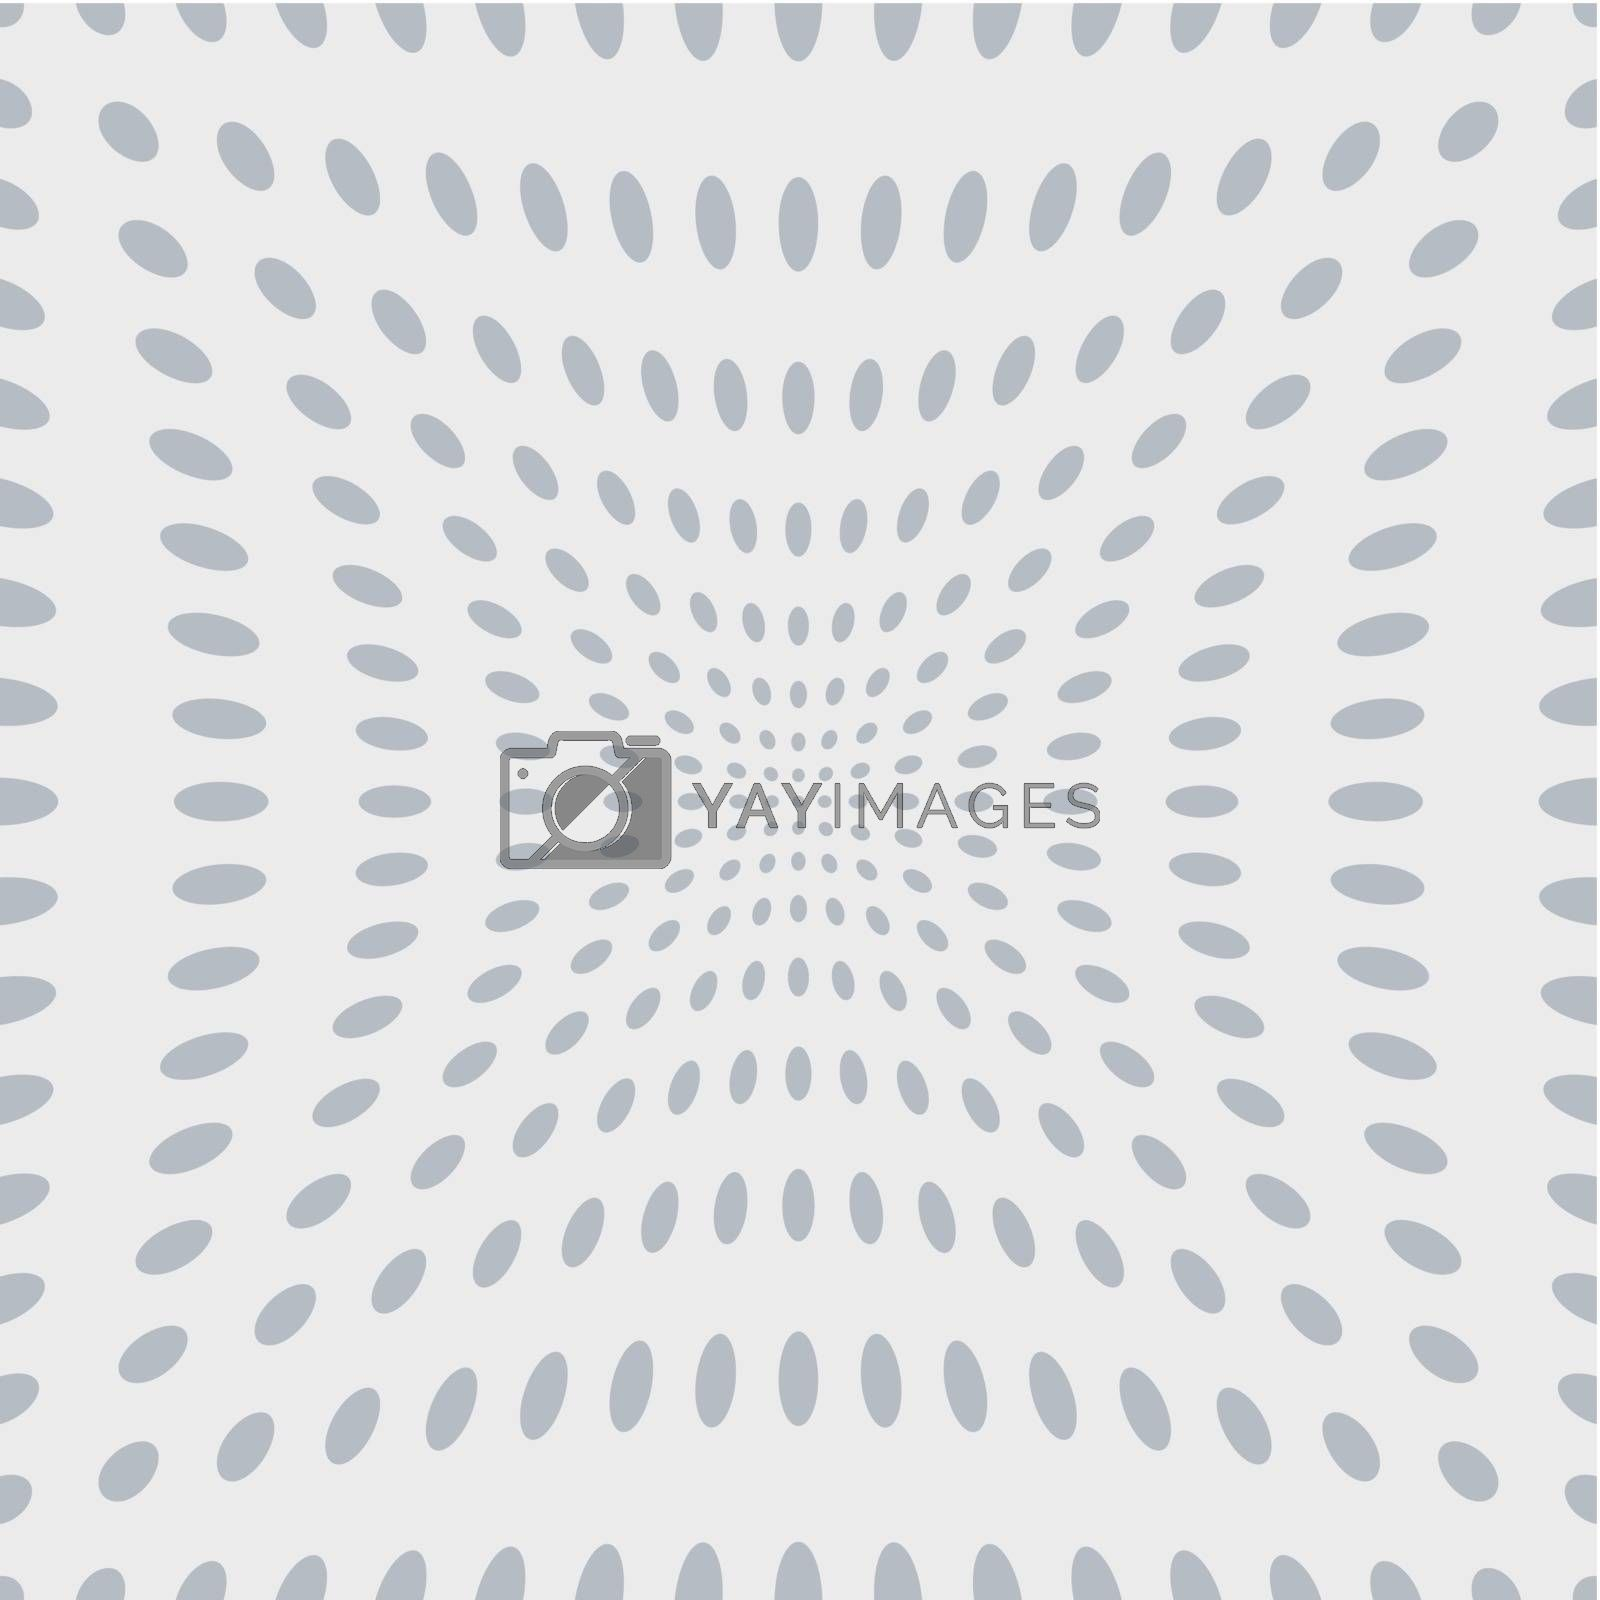 Royalty free image of Abstract perforated pattern by dvarg